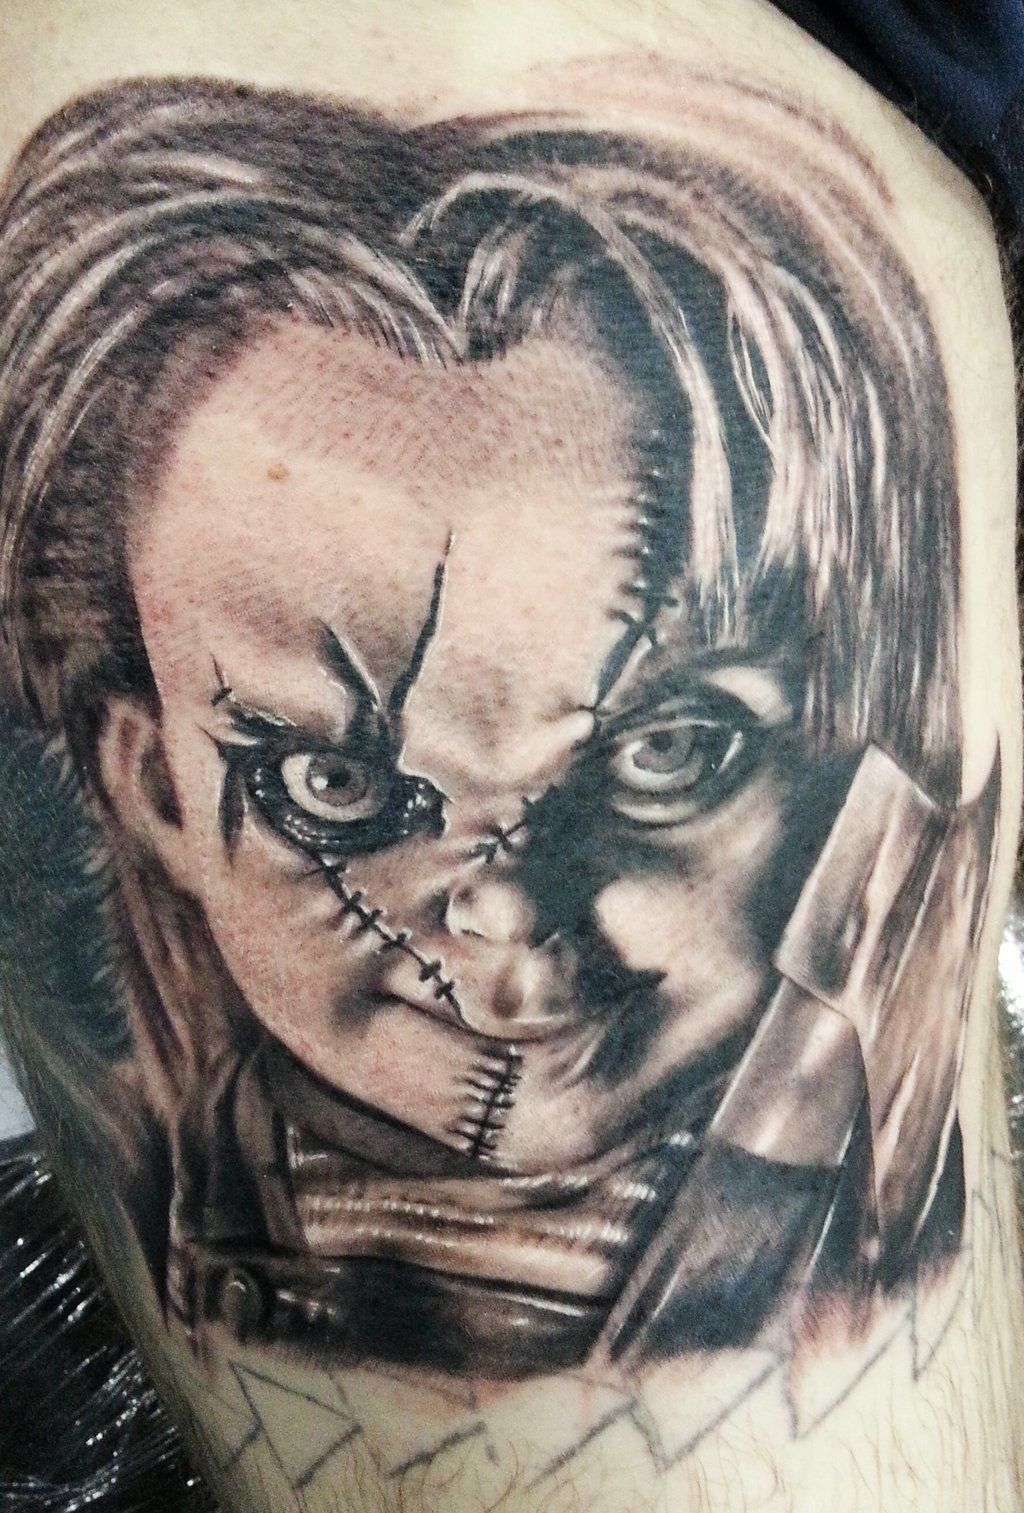 chucky tattoo google search tattoo sleeve ideas pinterest search and tattoos and body art. Black Bedroom Furniture Sets. Home Design Ideas